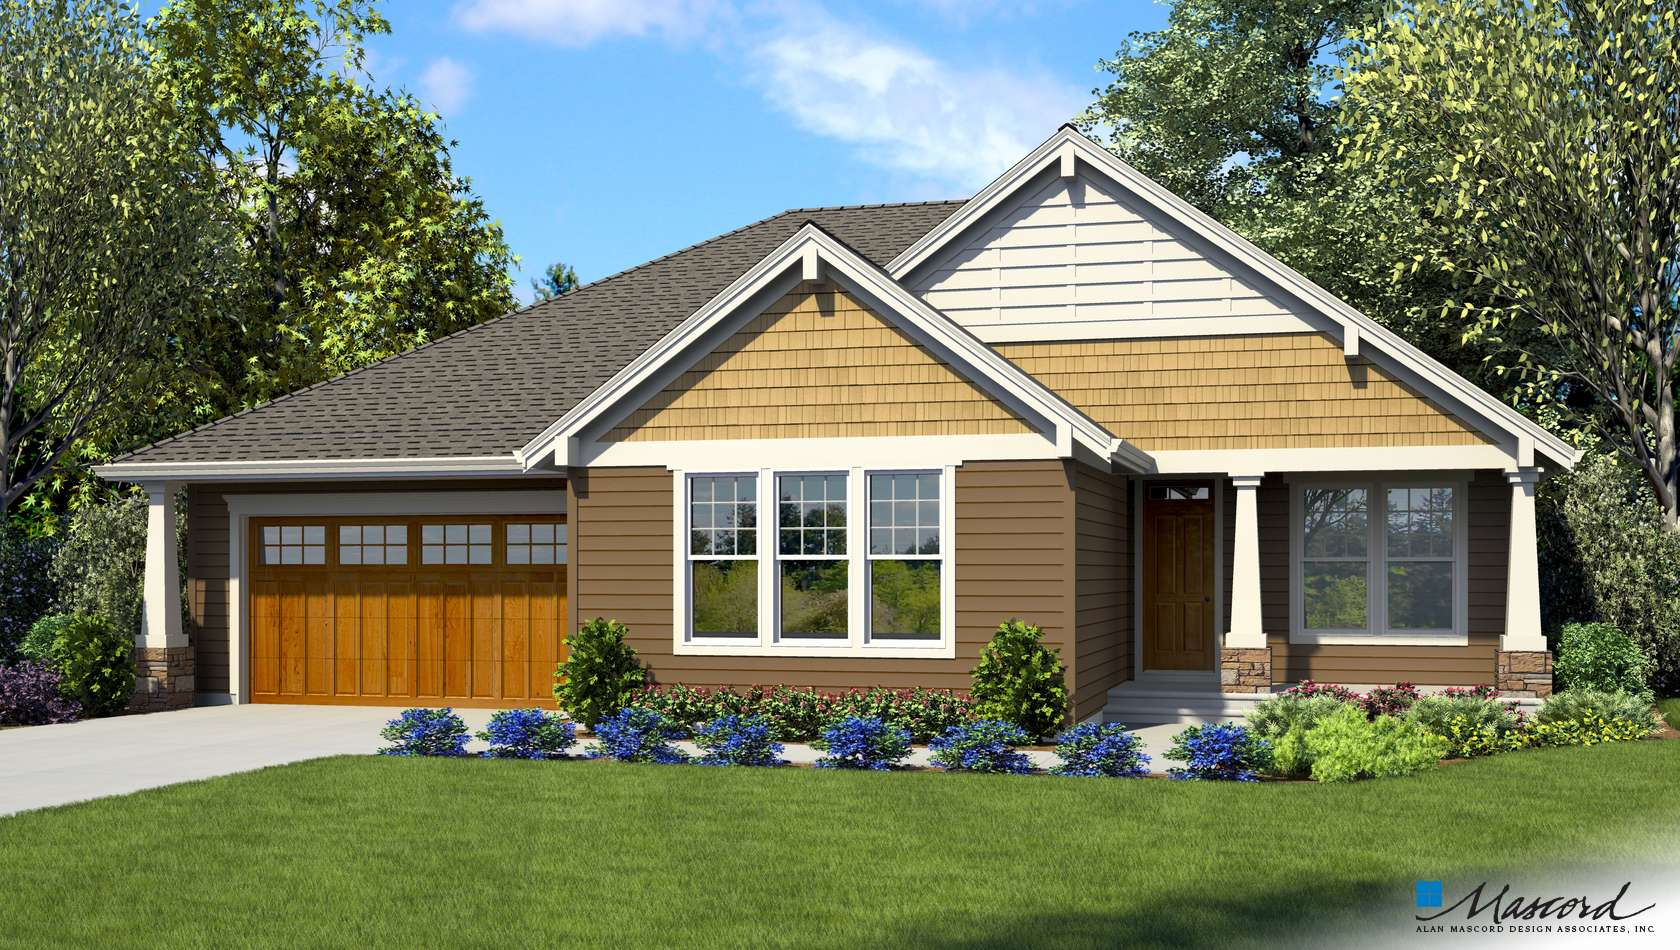 Main image for house plan 1231Q: The Coopertown